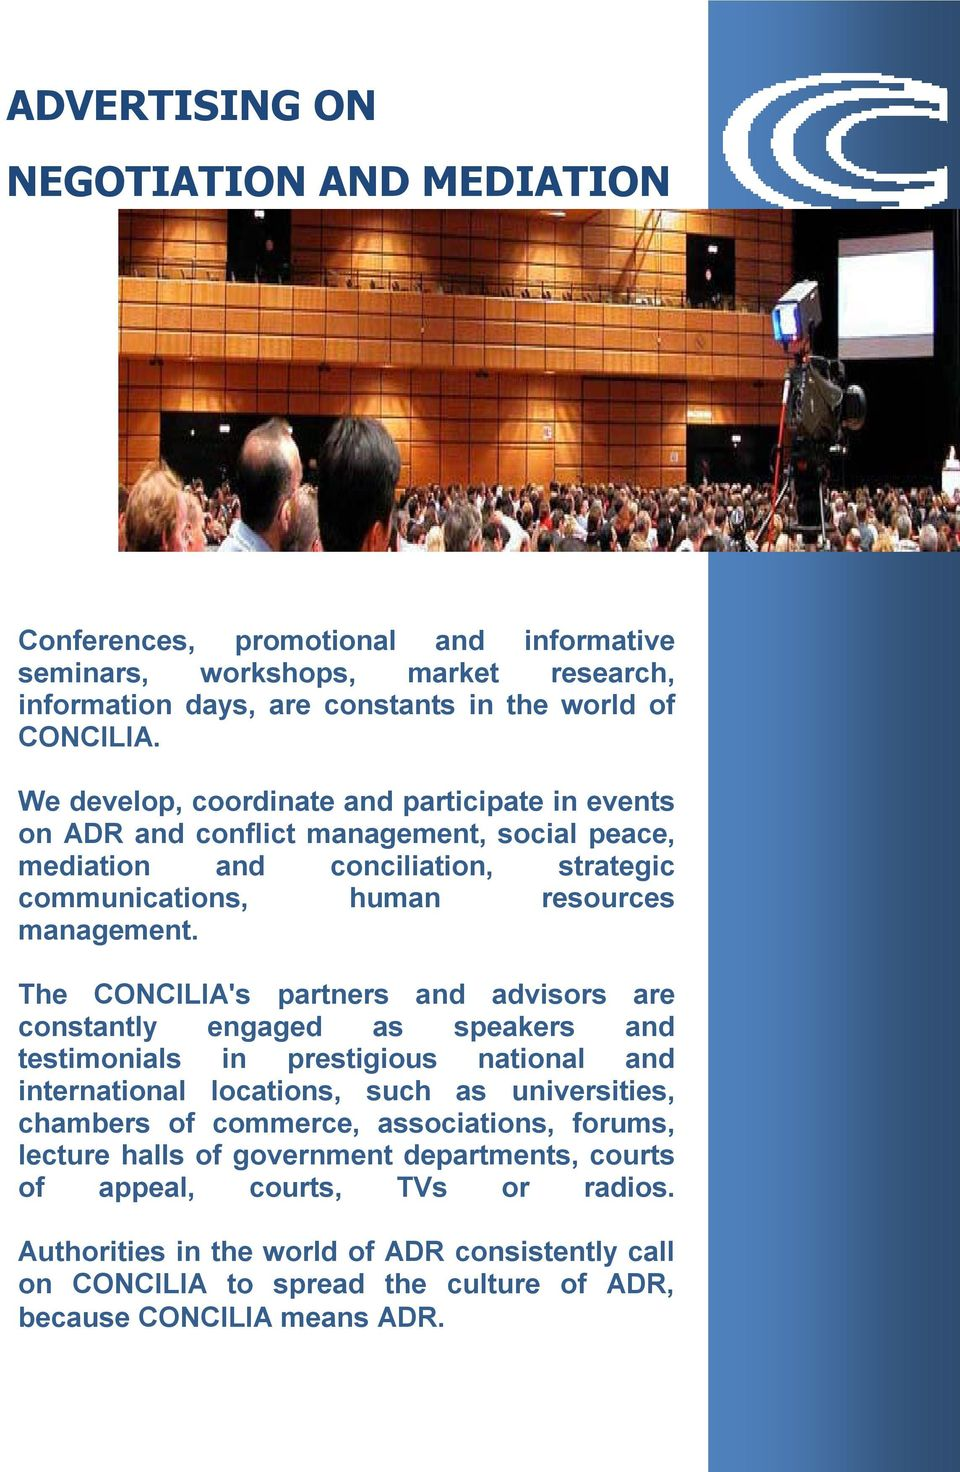 The CONCILIA's partners and advisors are constantly engaged as speakers and testimonials in prestigious national and international locations, such as universities, chambers of commerce,